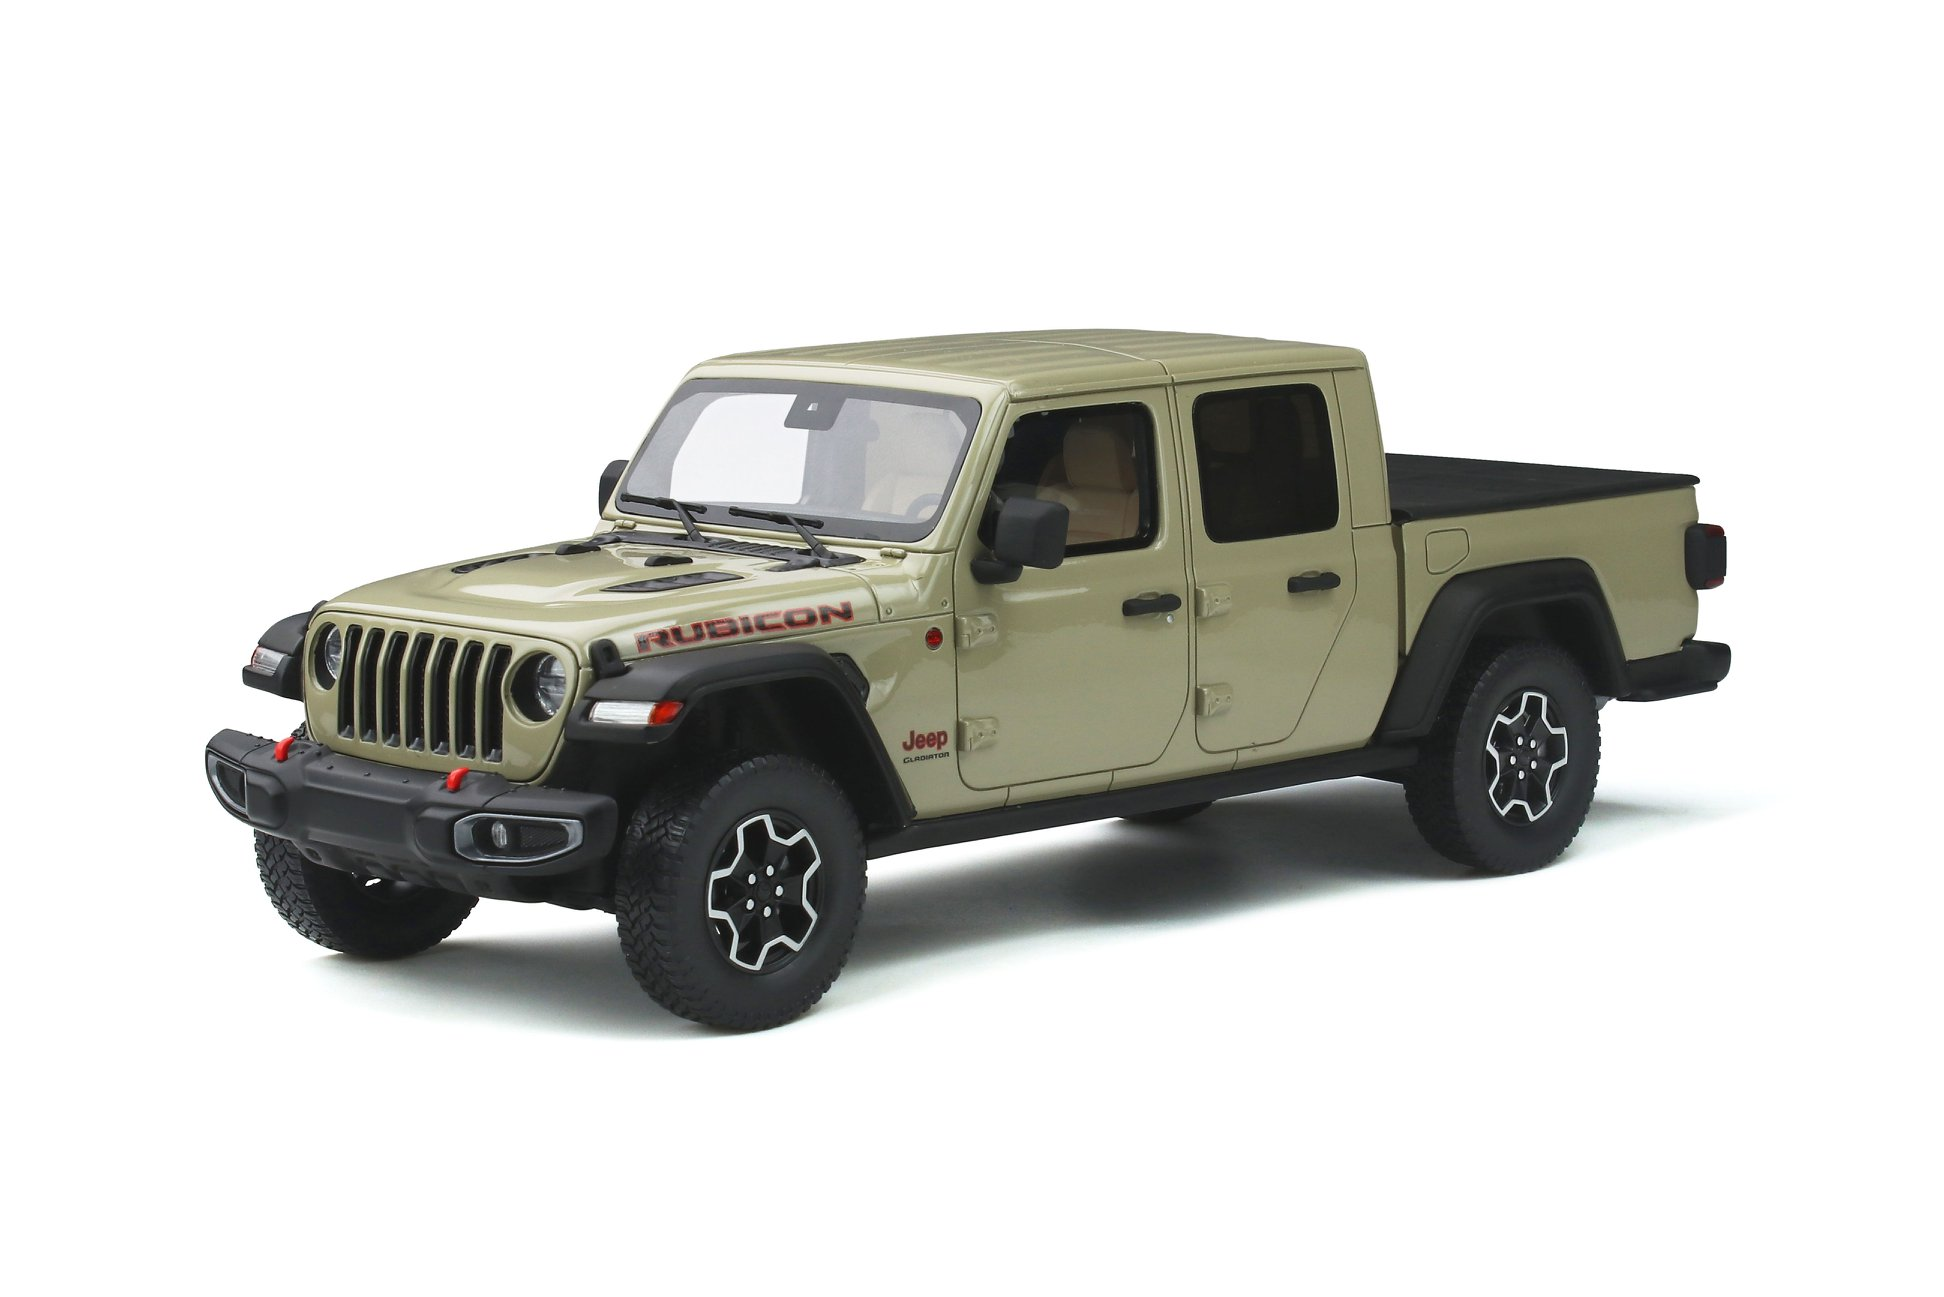 1/18 Jeep Gladiator Rubicon GT Spirit acheter